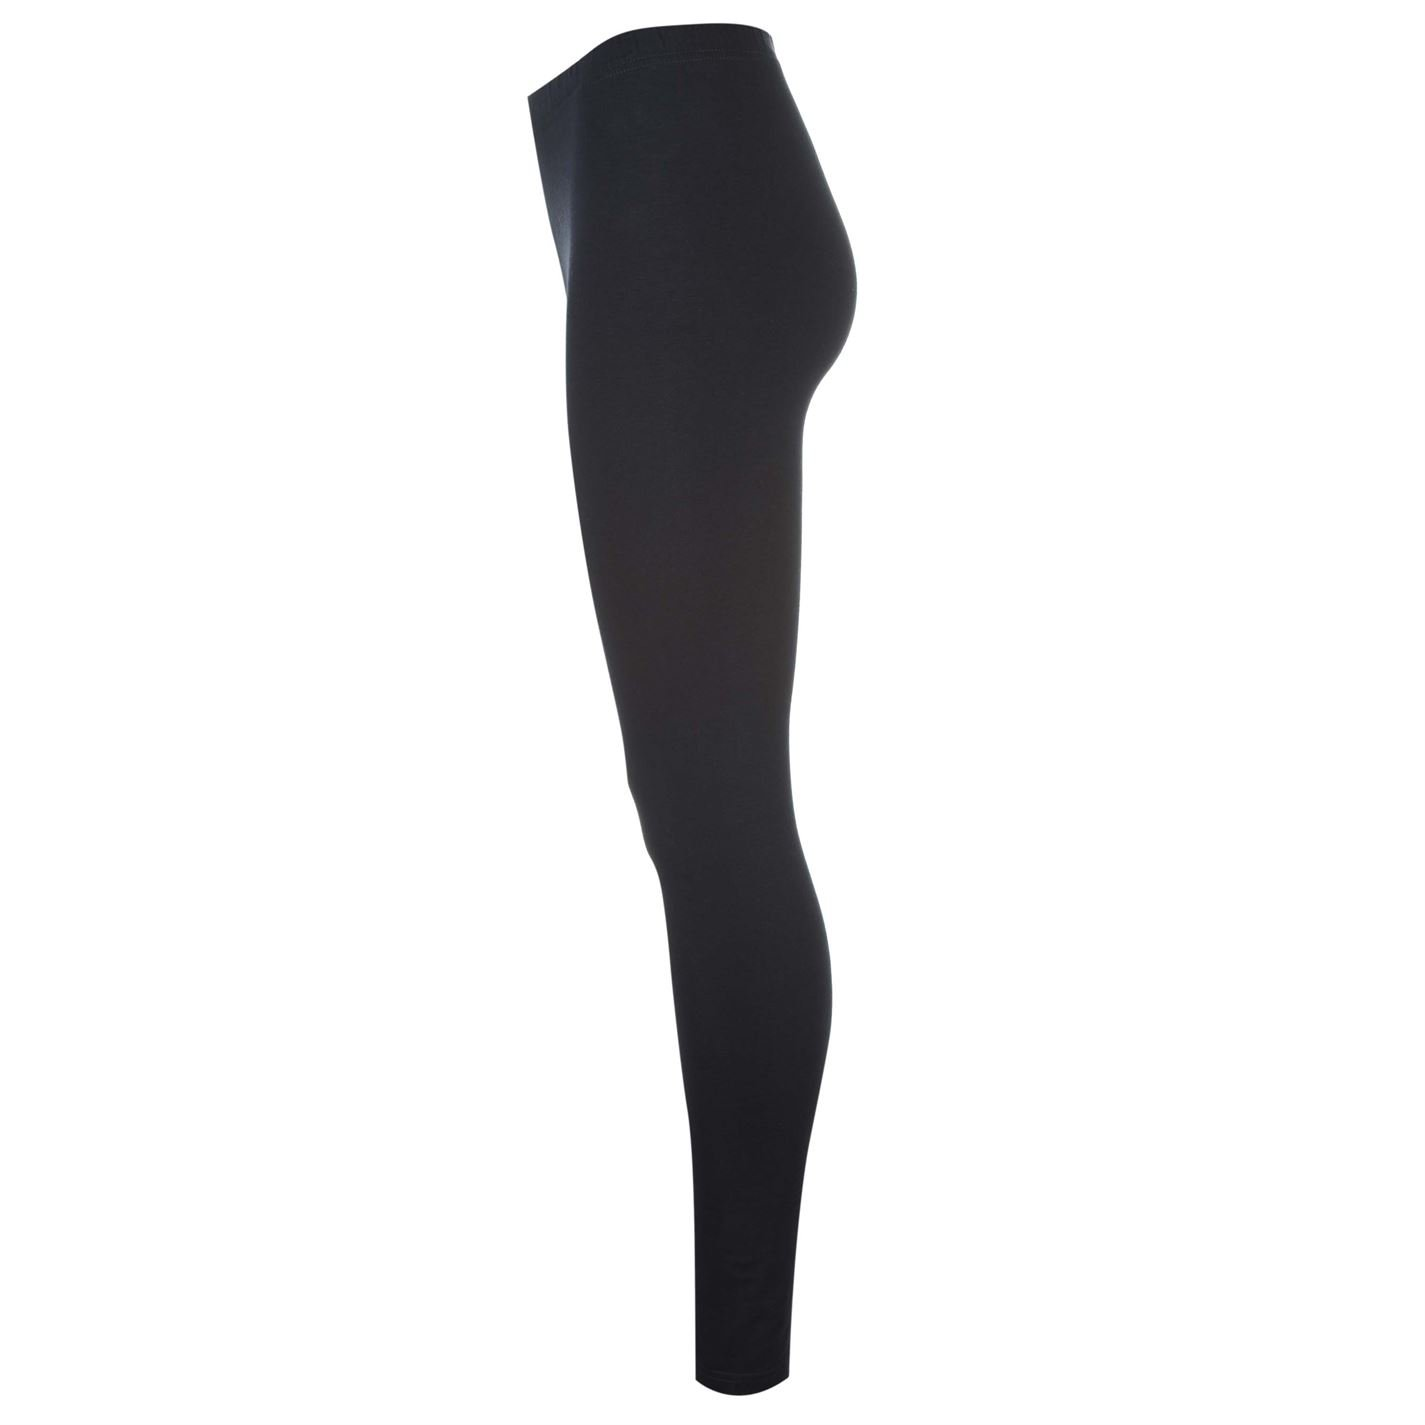 clear-cut texture arriving innovative design MISO Women's Leggings: Amazon.co.uk: Clothing